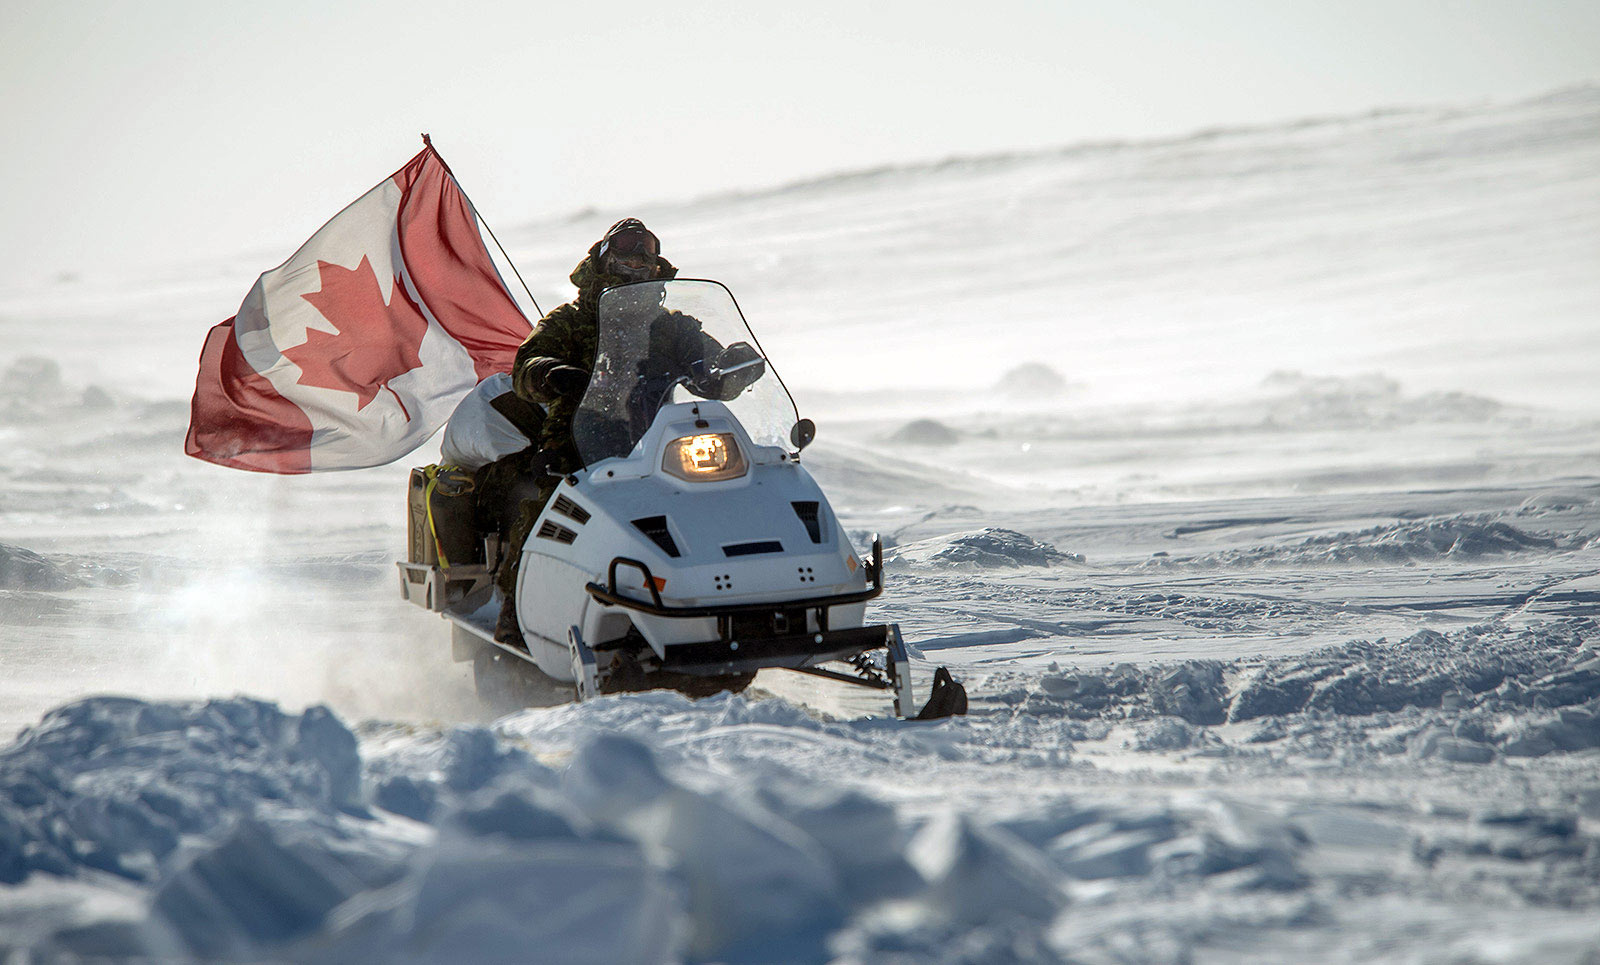 D900 Snowmobile - Proudly Canadian